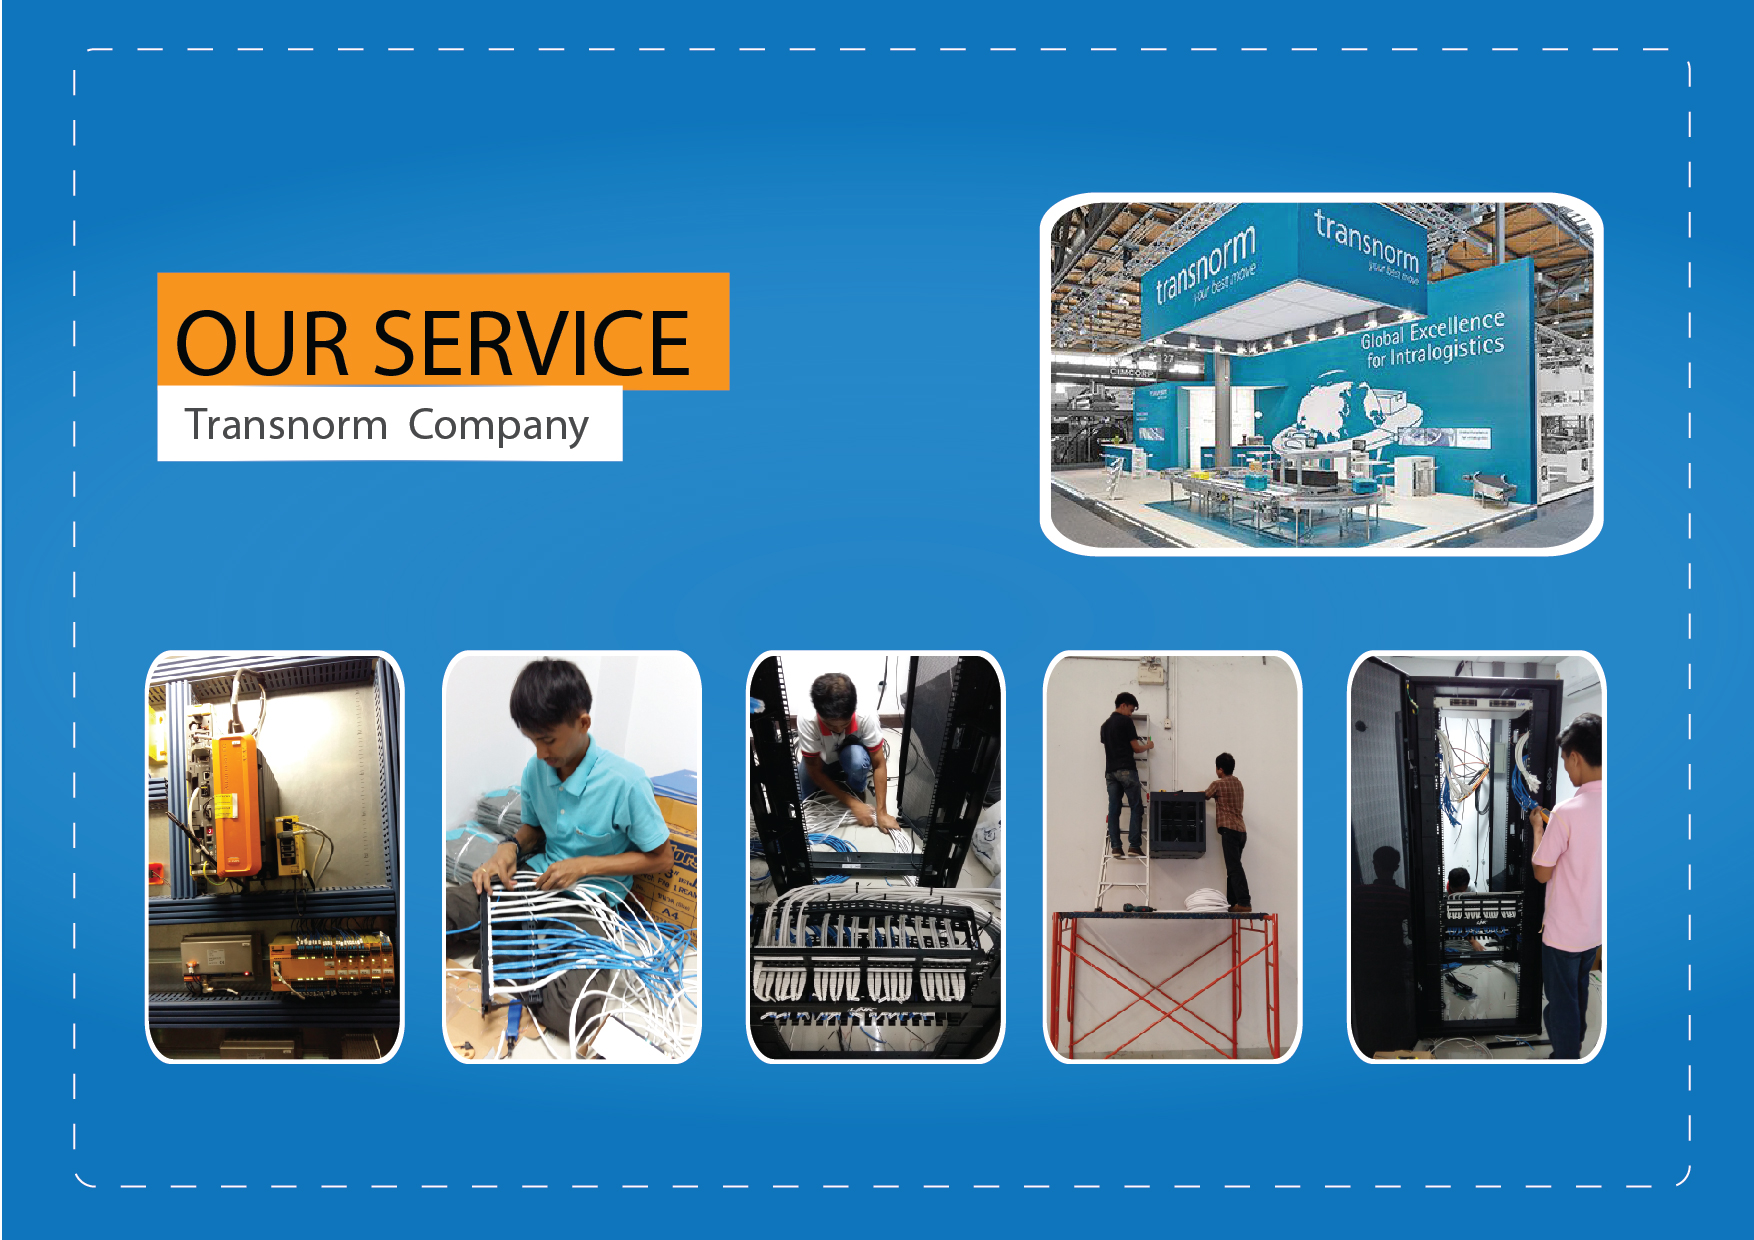 our service transnorm edit a4-01